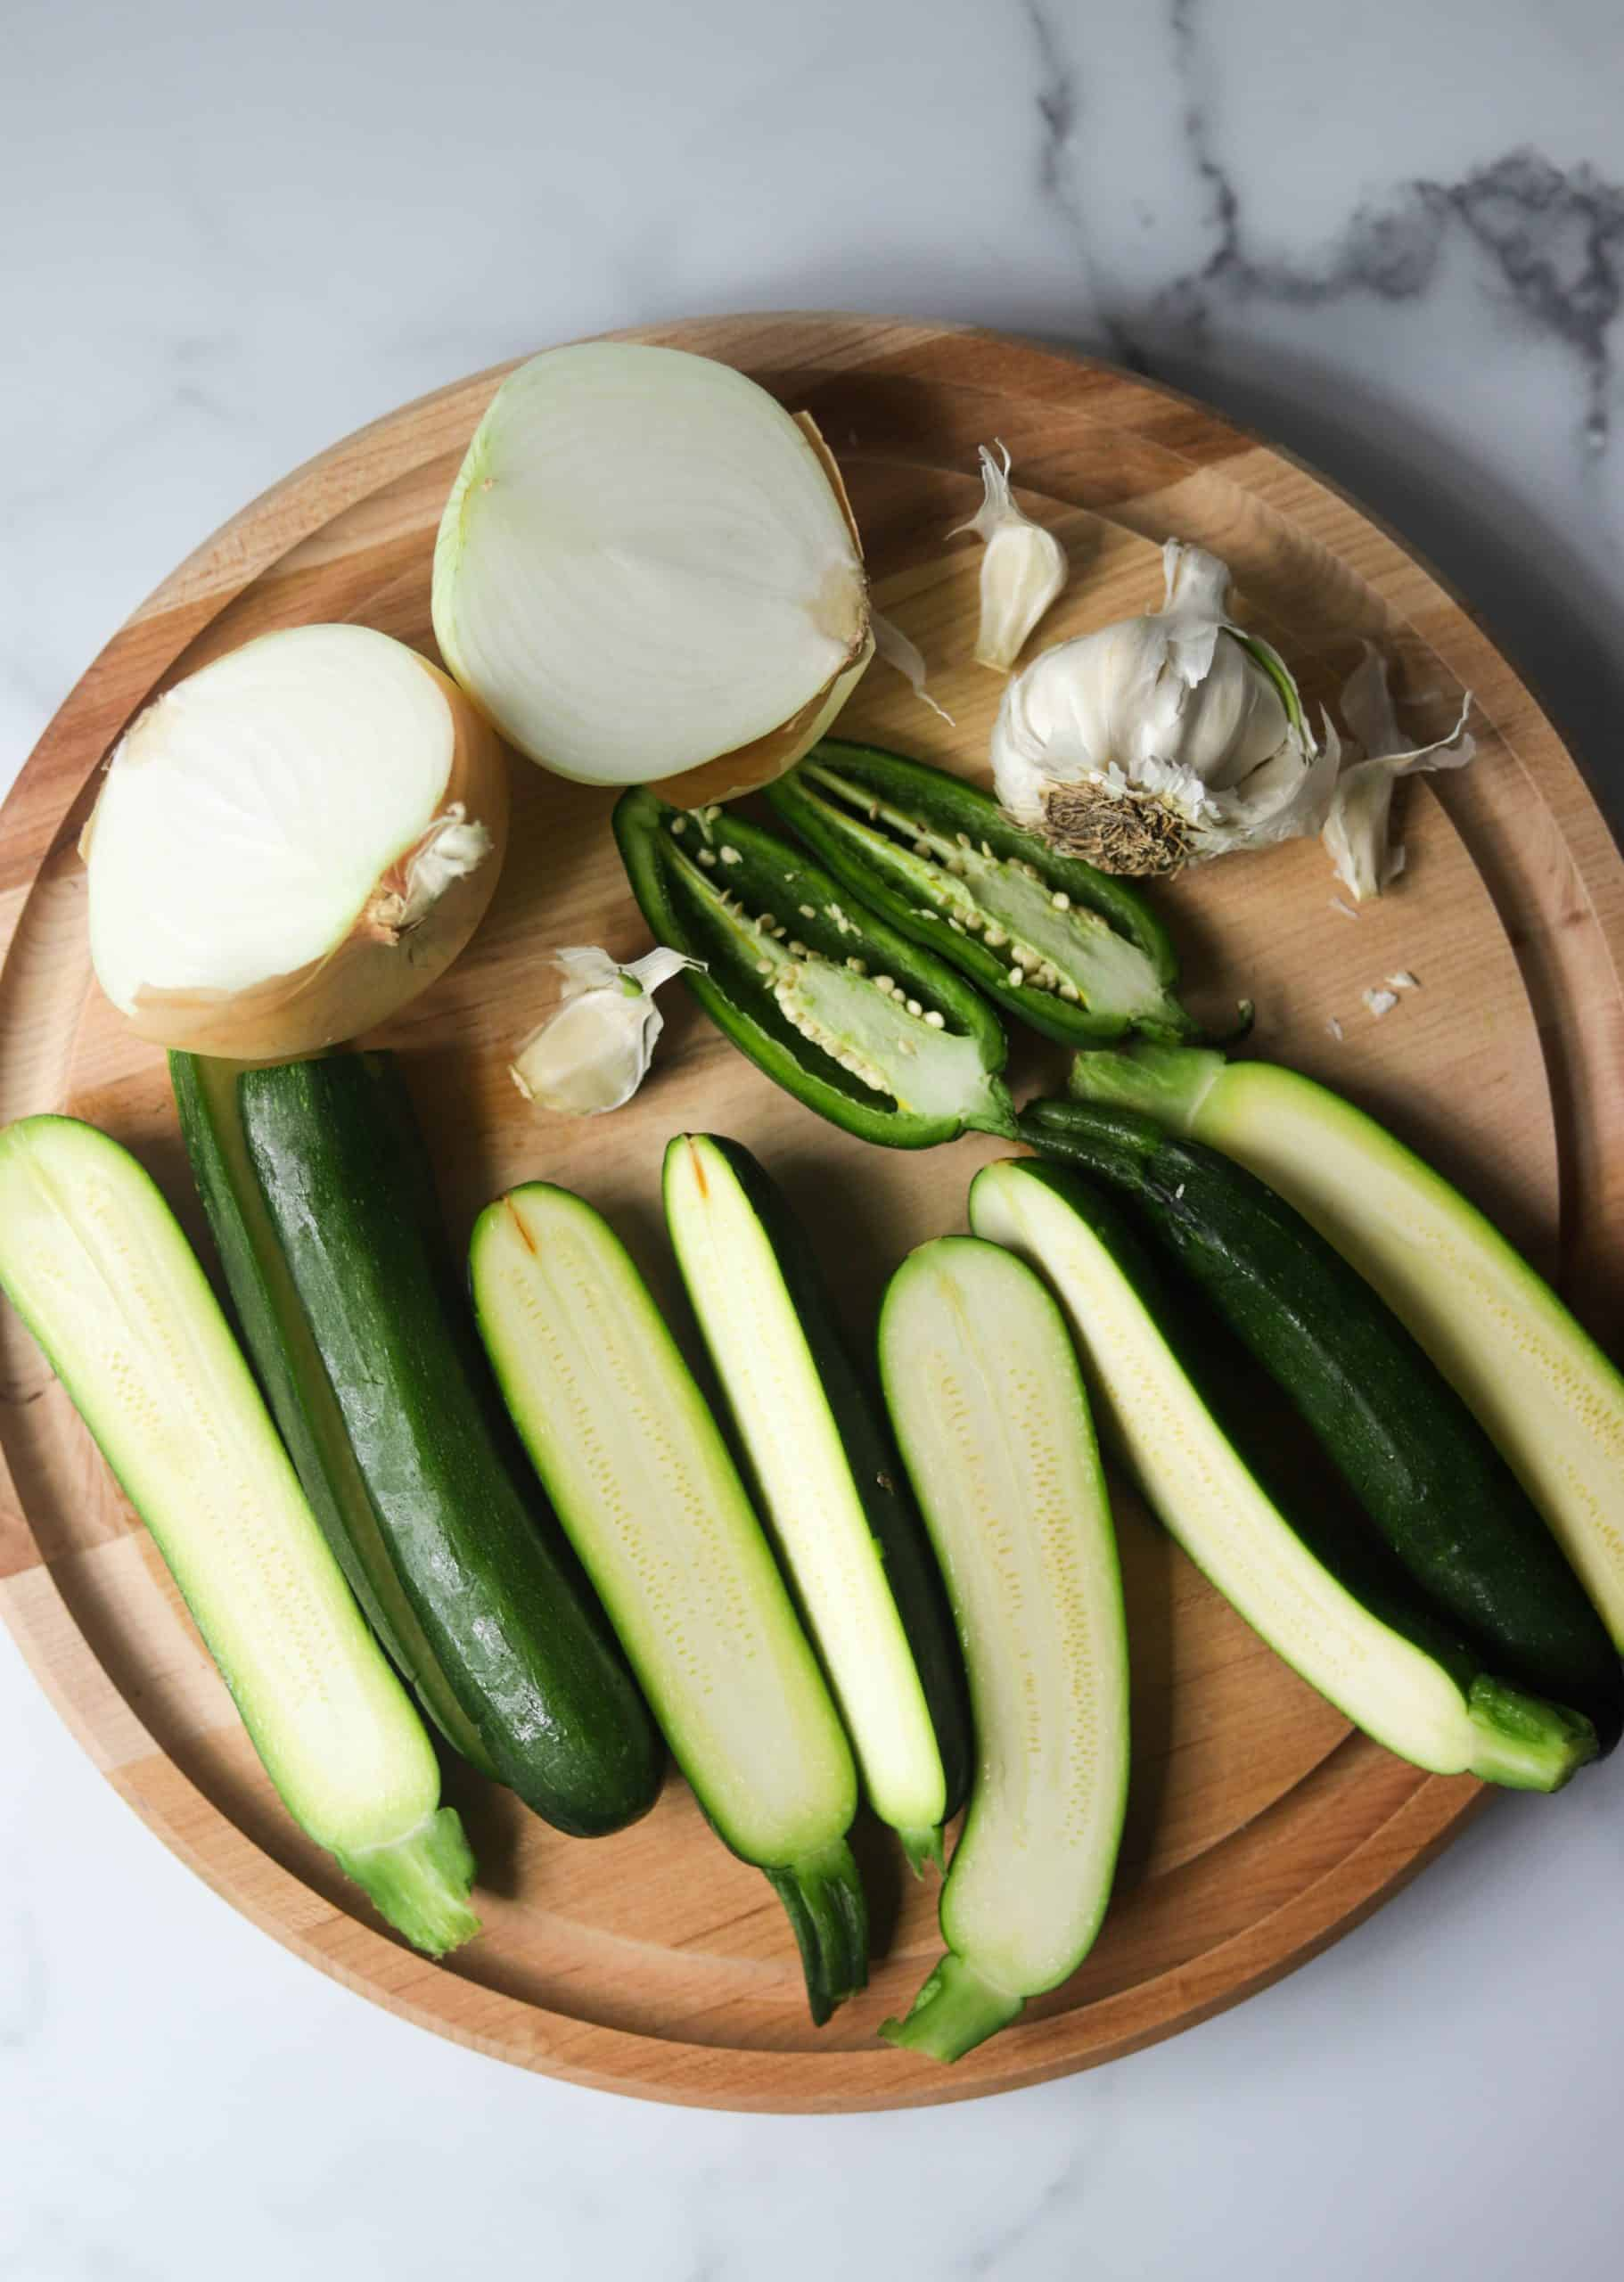 A wooden cutting board with zucchini soup ingredients.